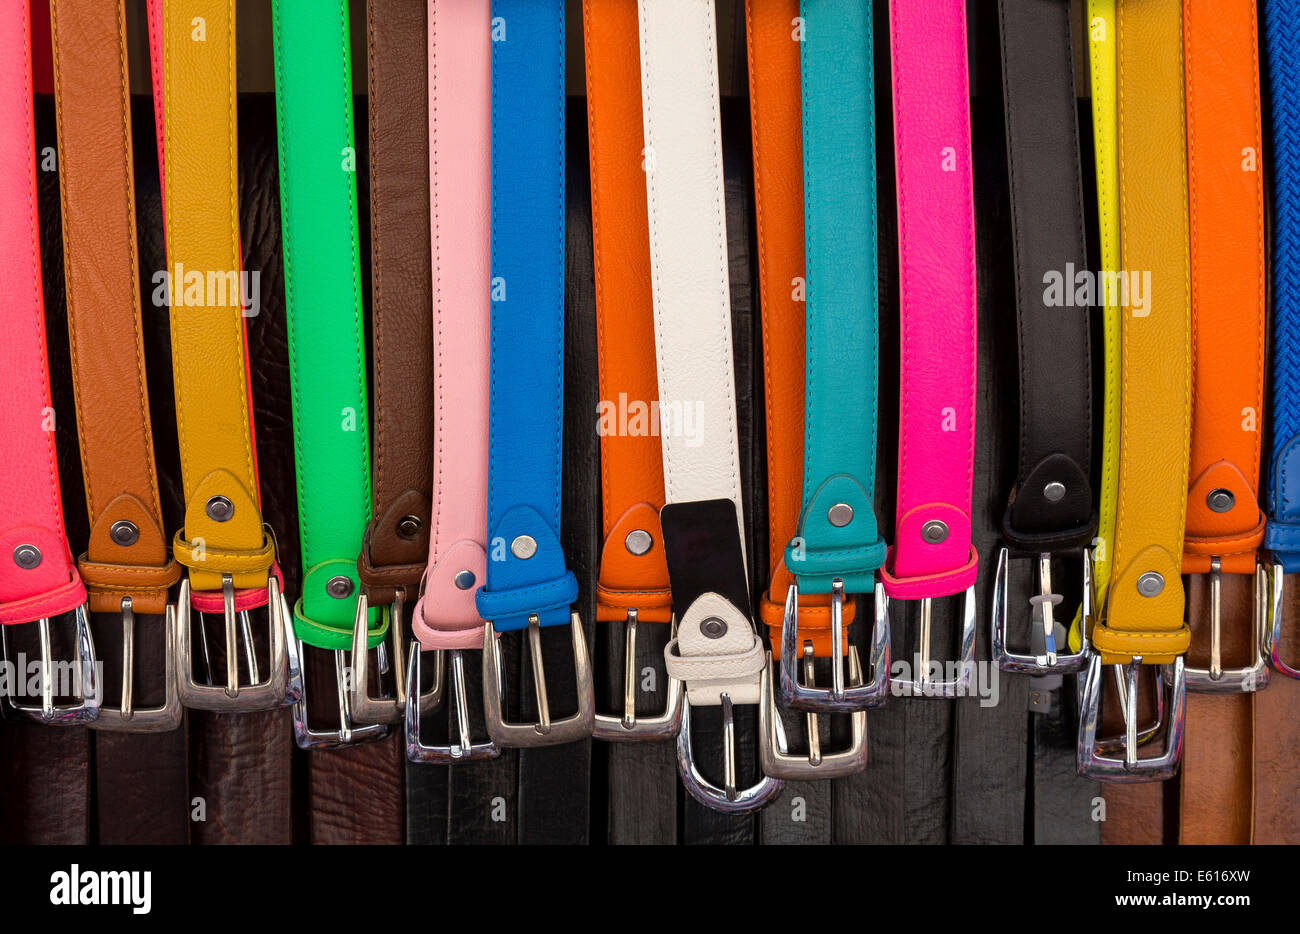 Colorful belts for sale, weekly market, Santanyi, Majorca, Balearic Islands, Spain - Stock Image